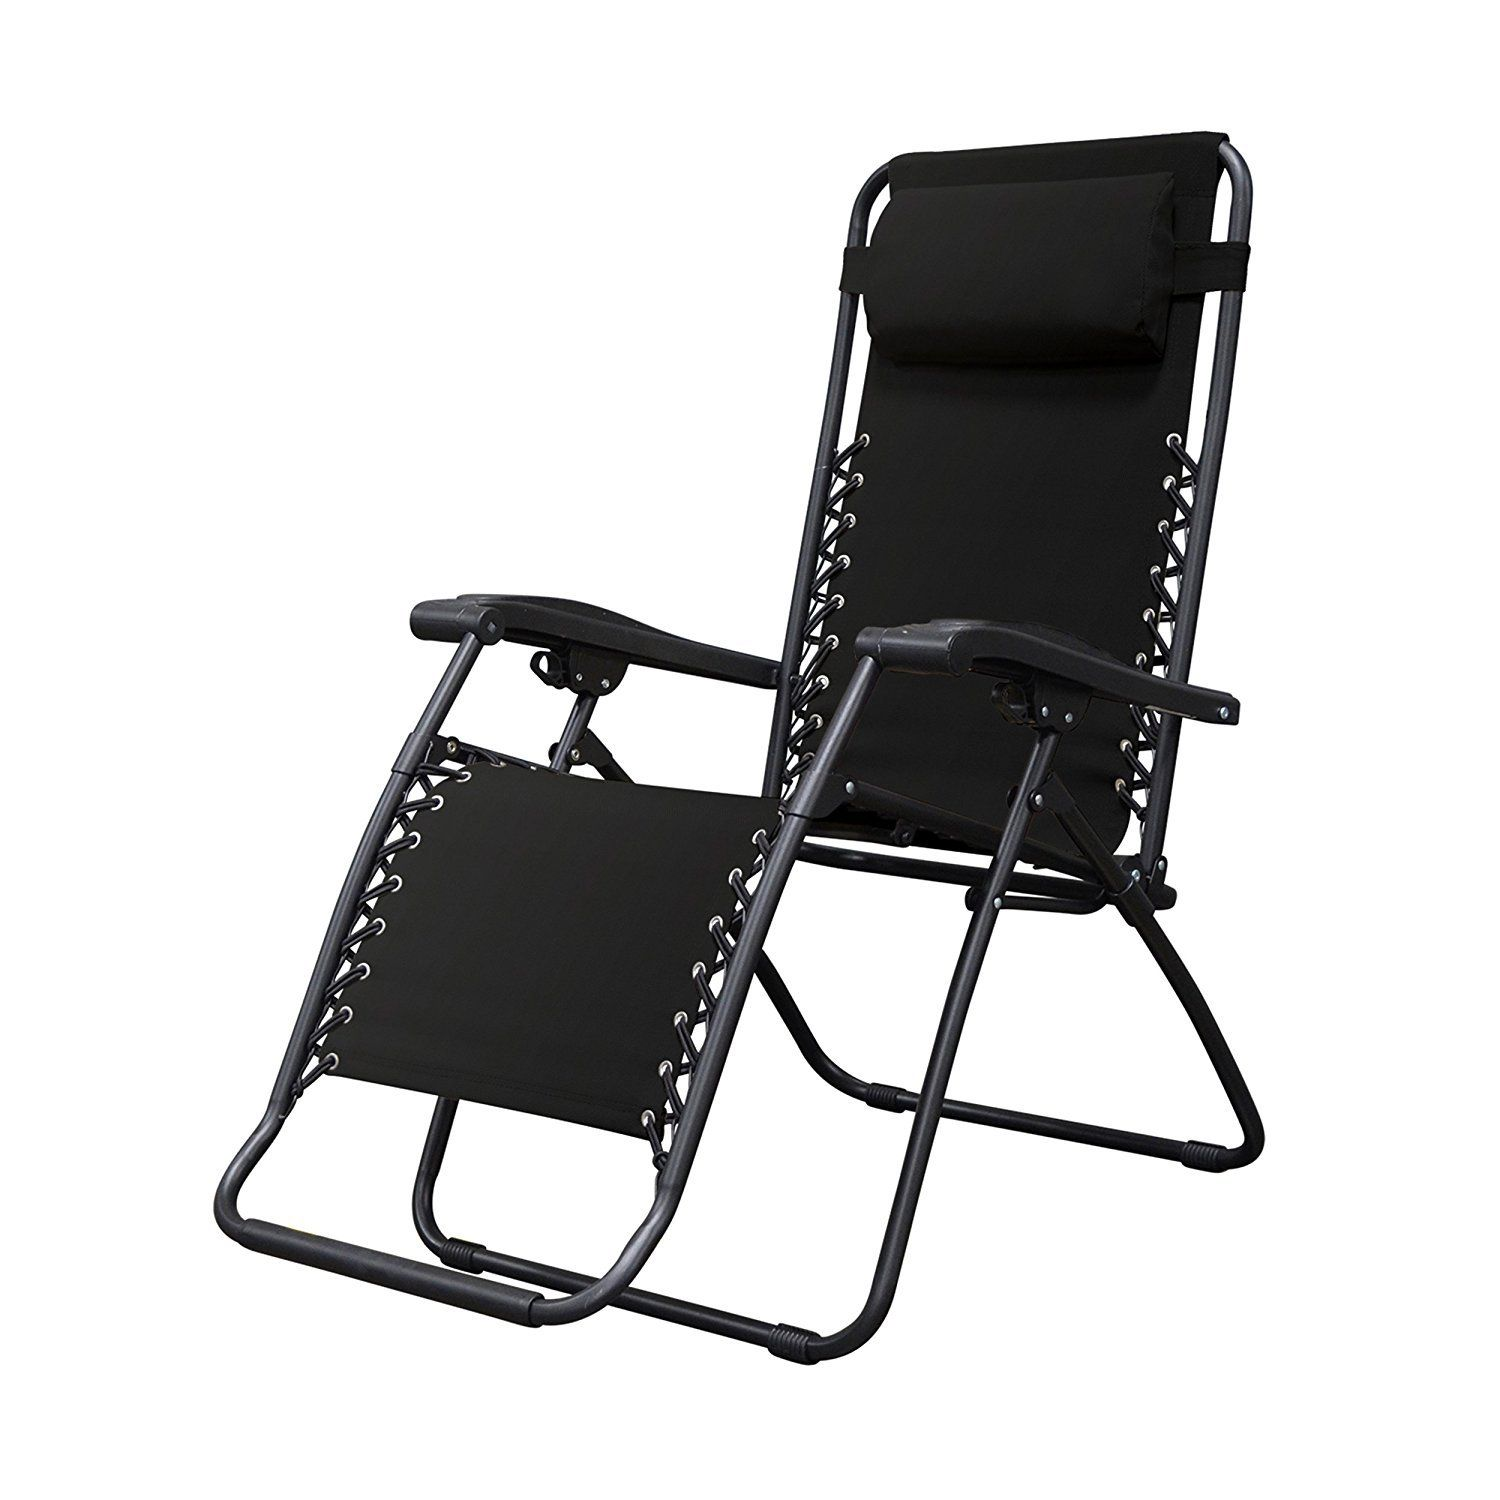 Caravan Sports Infinity Zero Gravity Chair